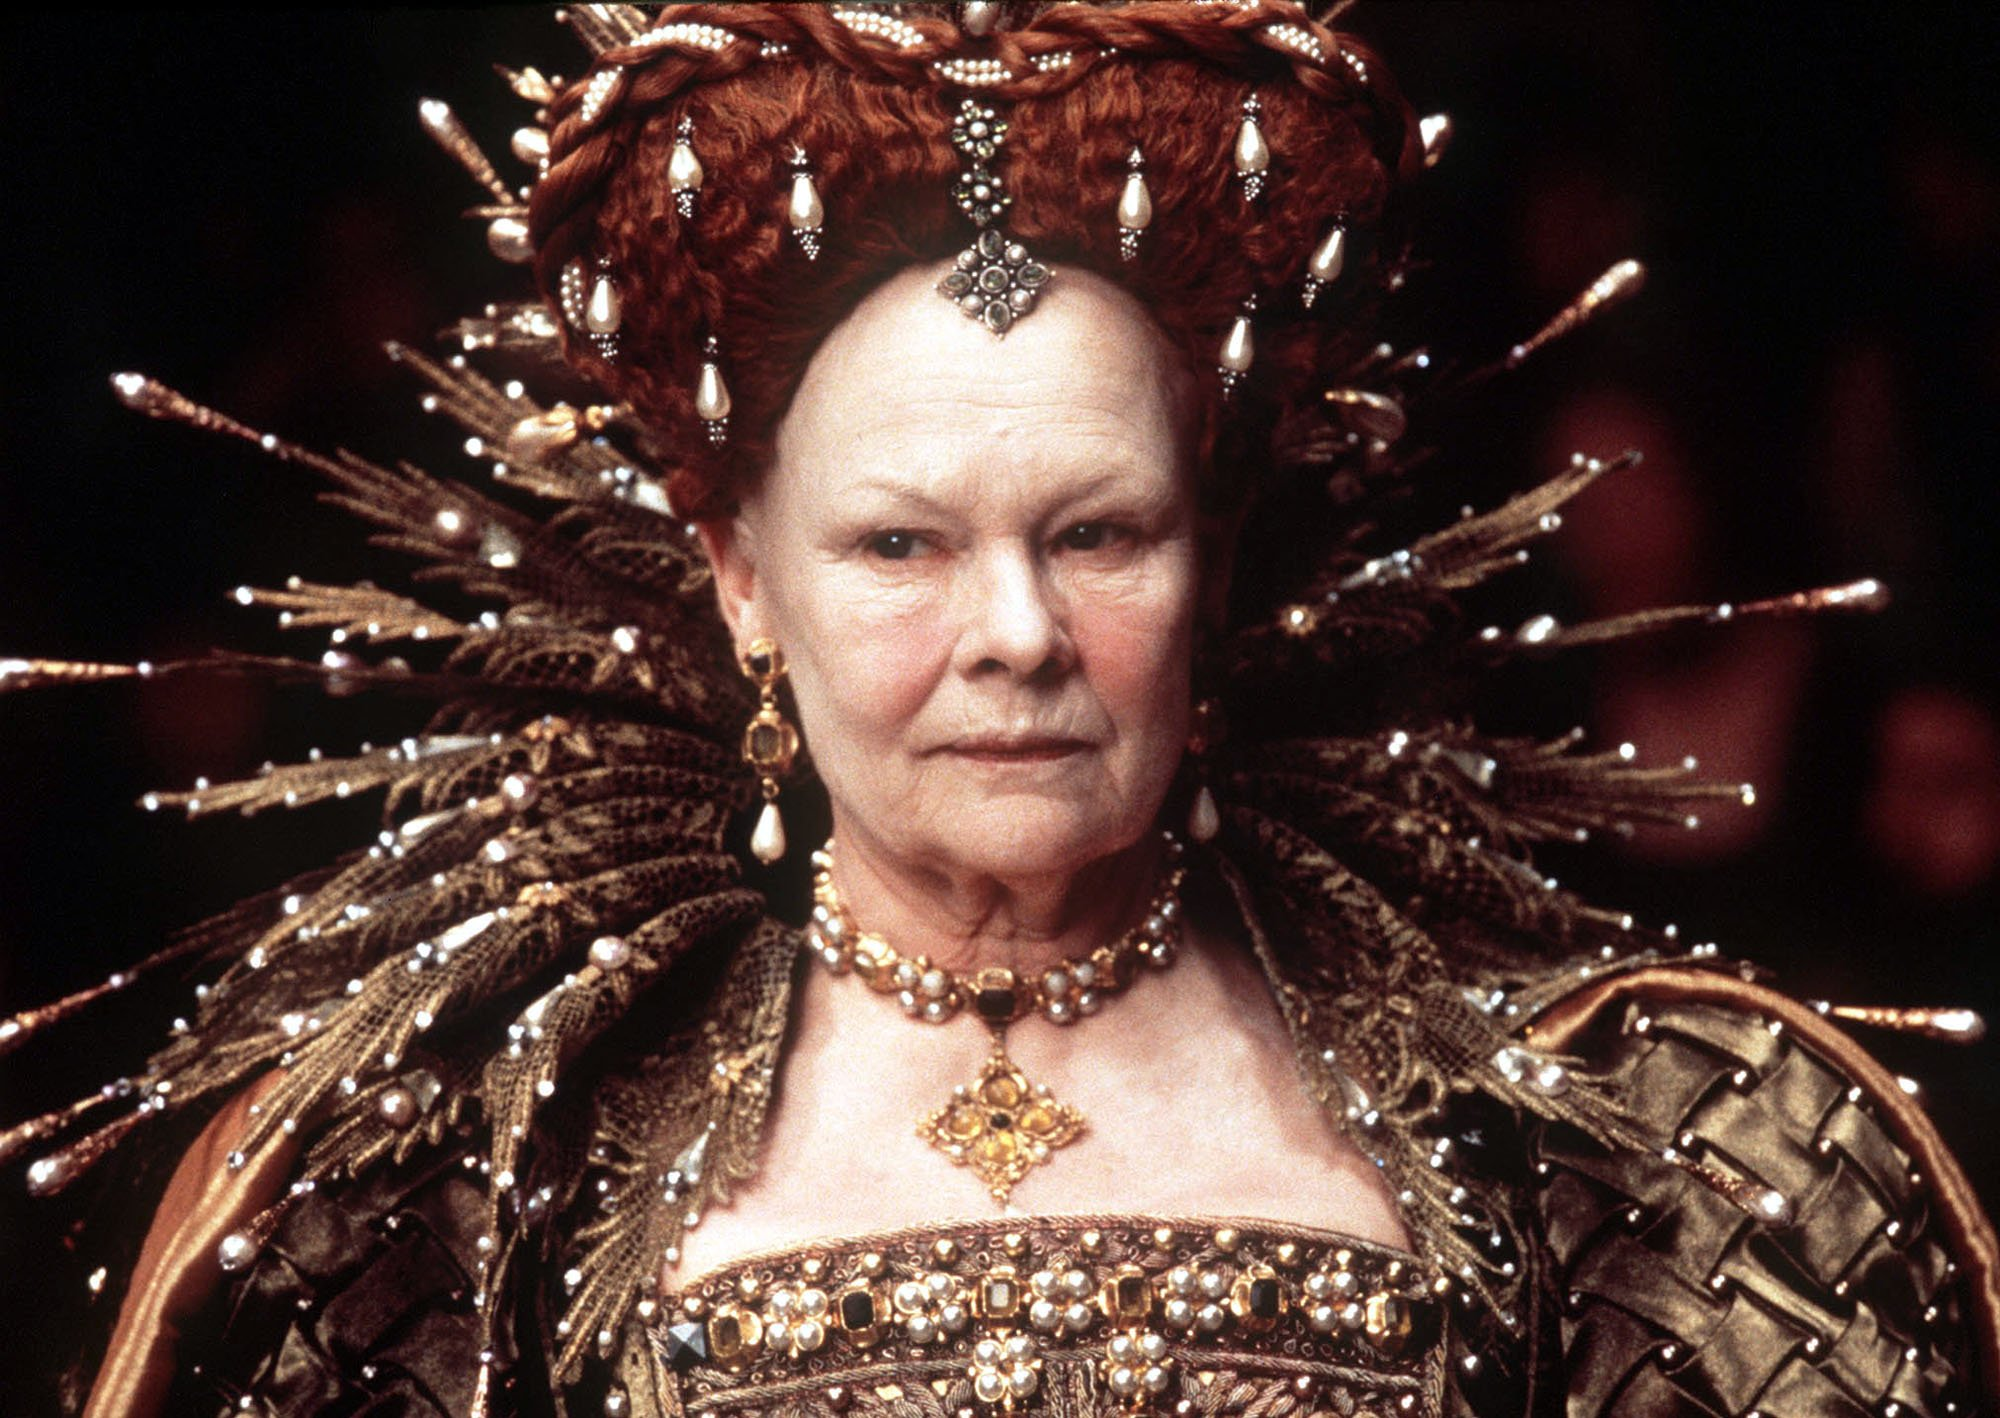 """An undated image of actress Judi Dench playing Queen Elizabeth I in the film """"Shakespeare in Love"""" 